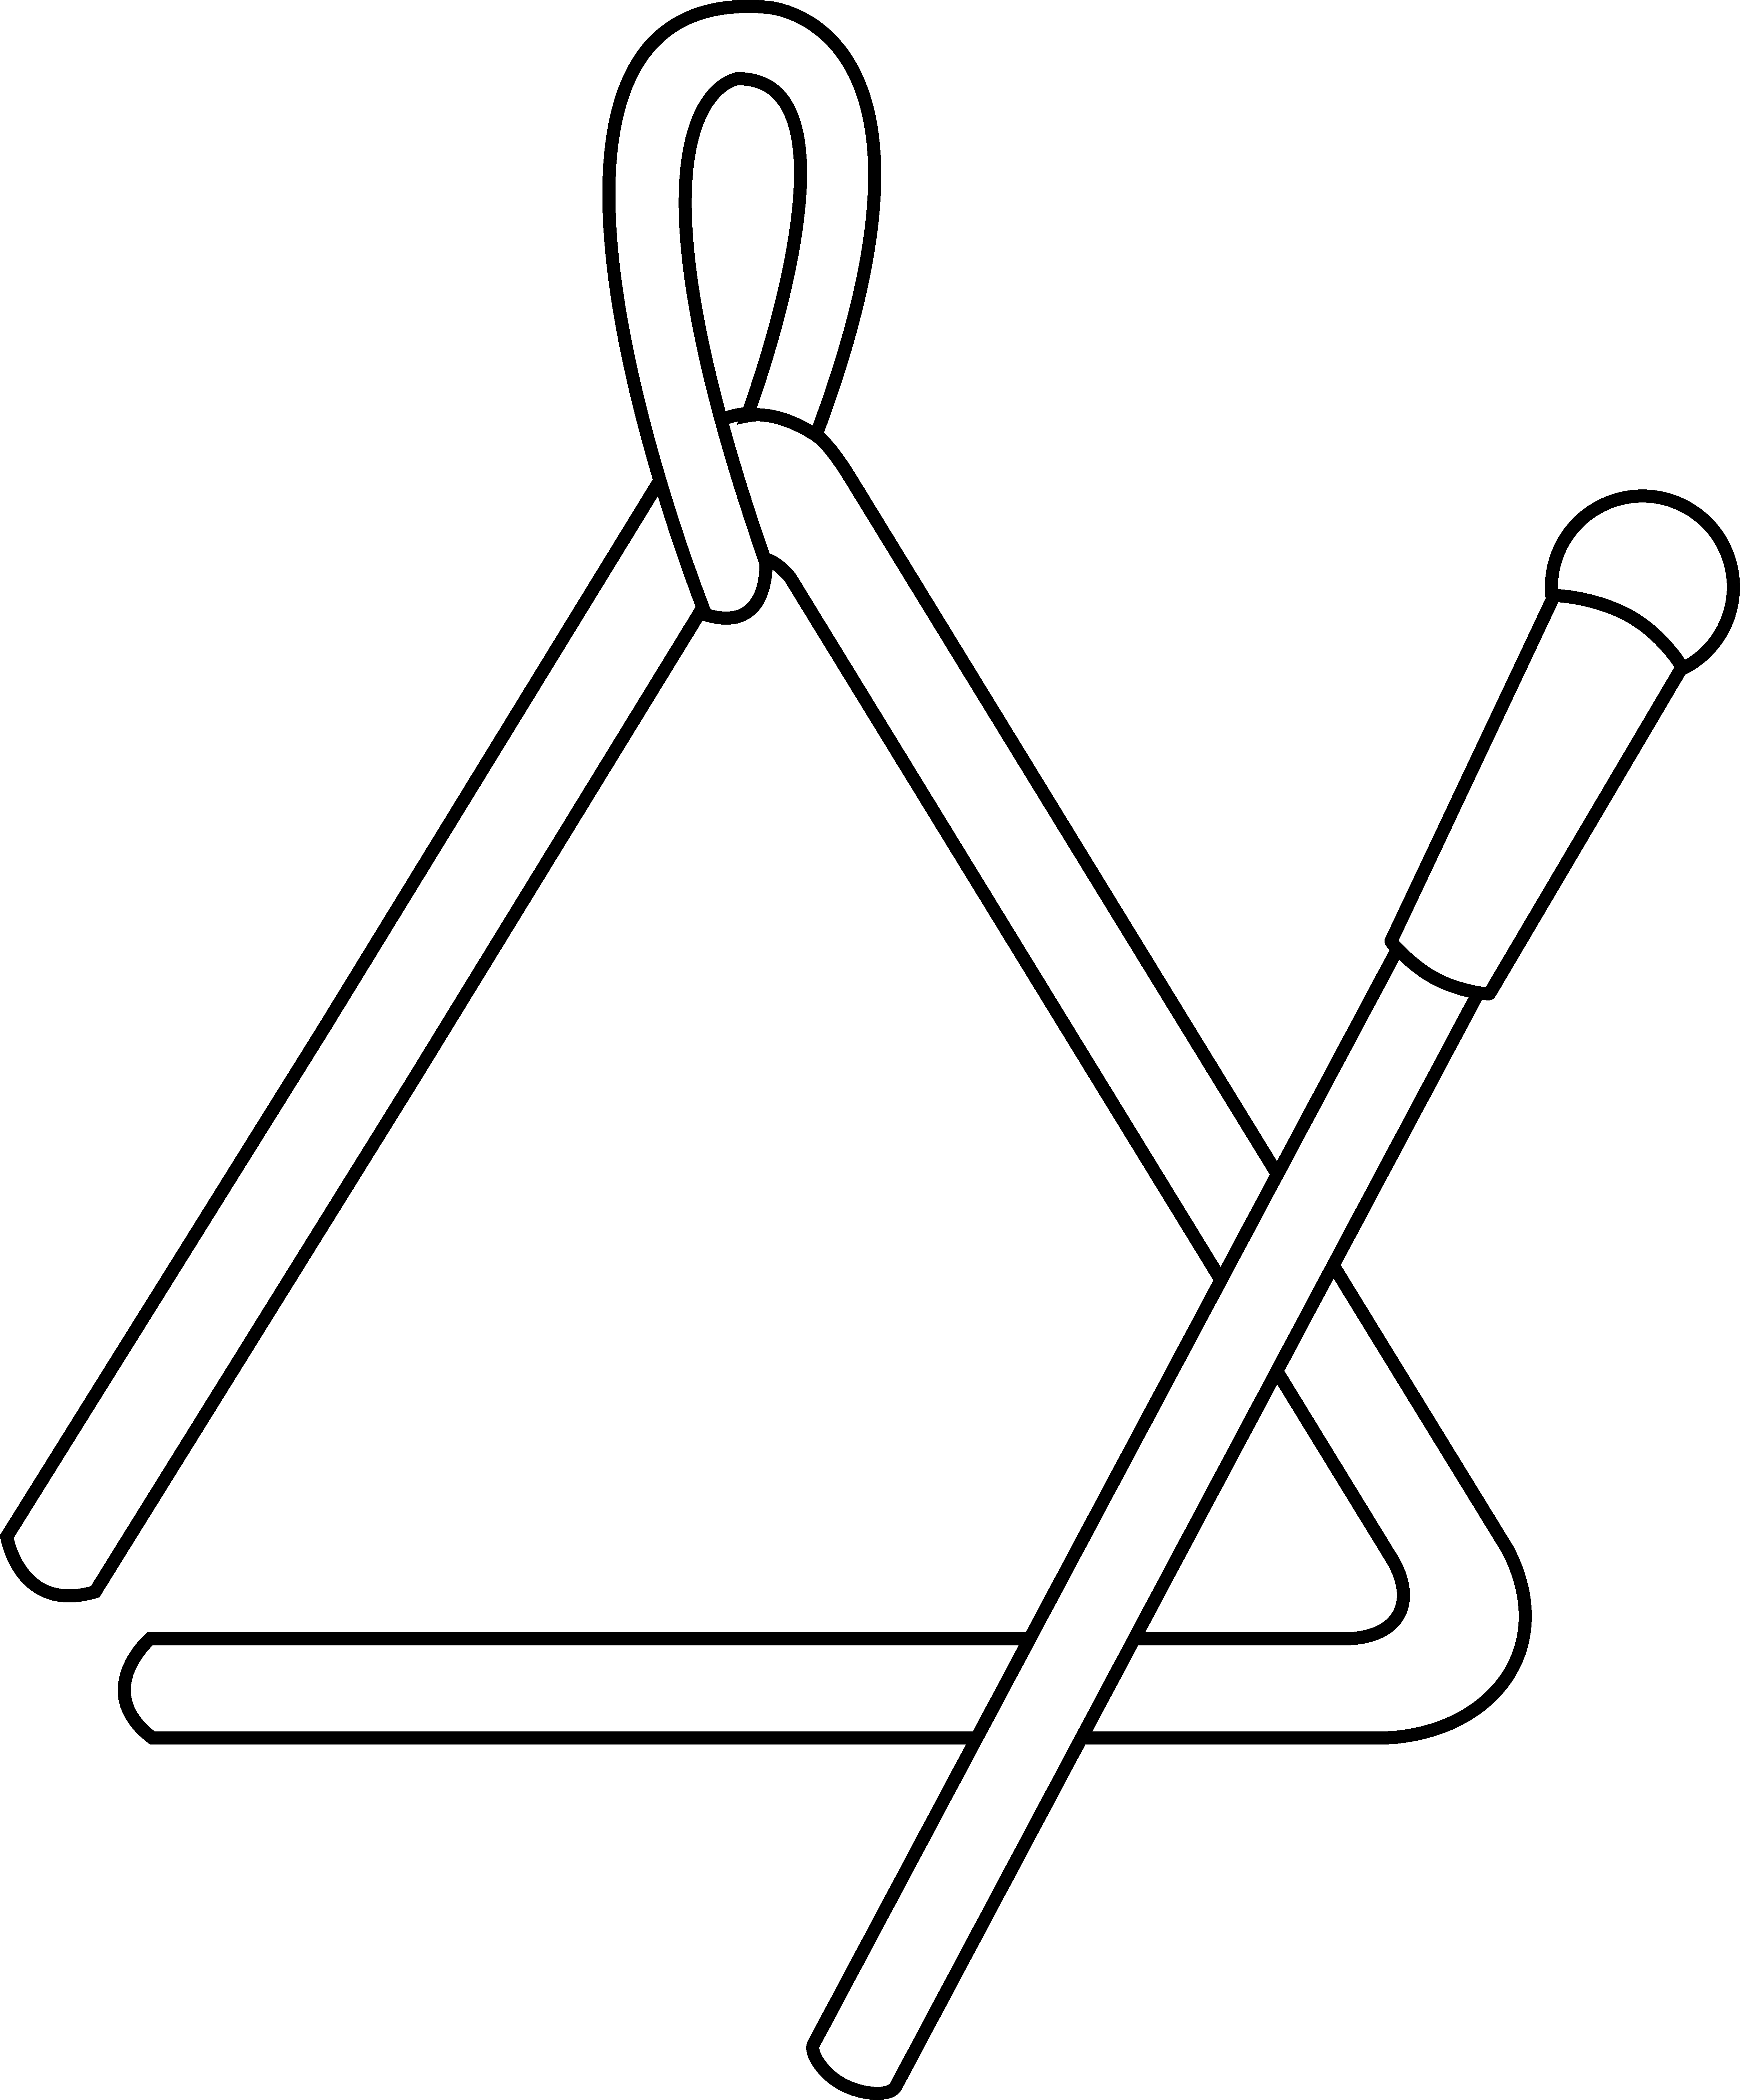 Music with cross clipart black and white jpg free library 28+ Collection of Triangle Instrument Clipart Black And White | High ... jpg free library